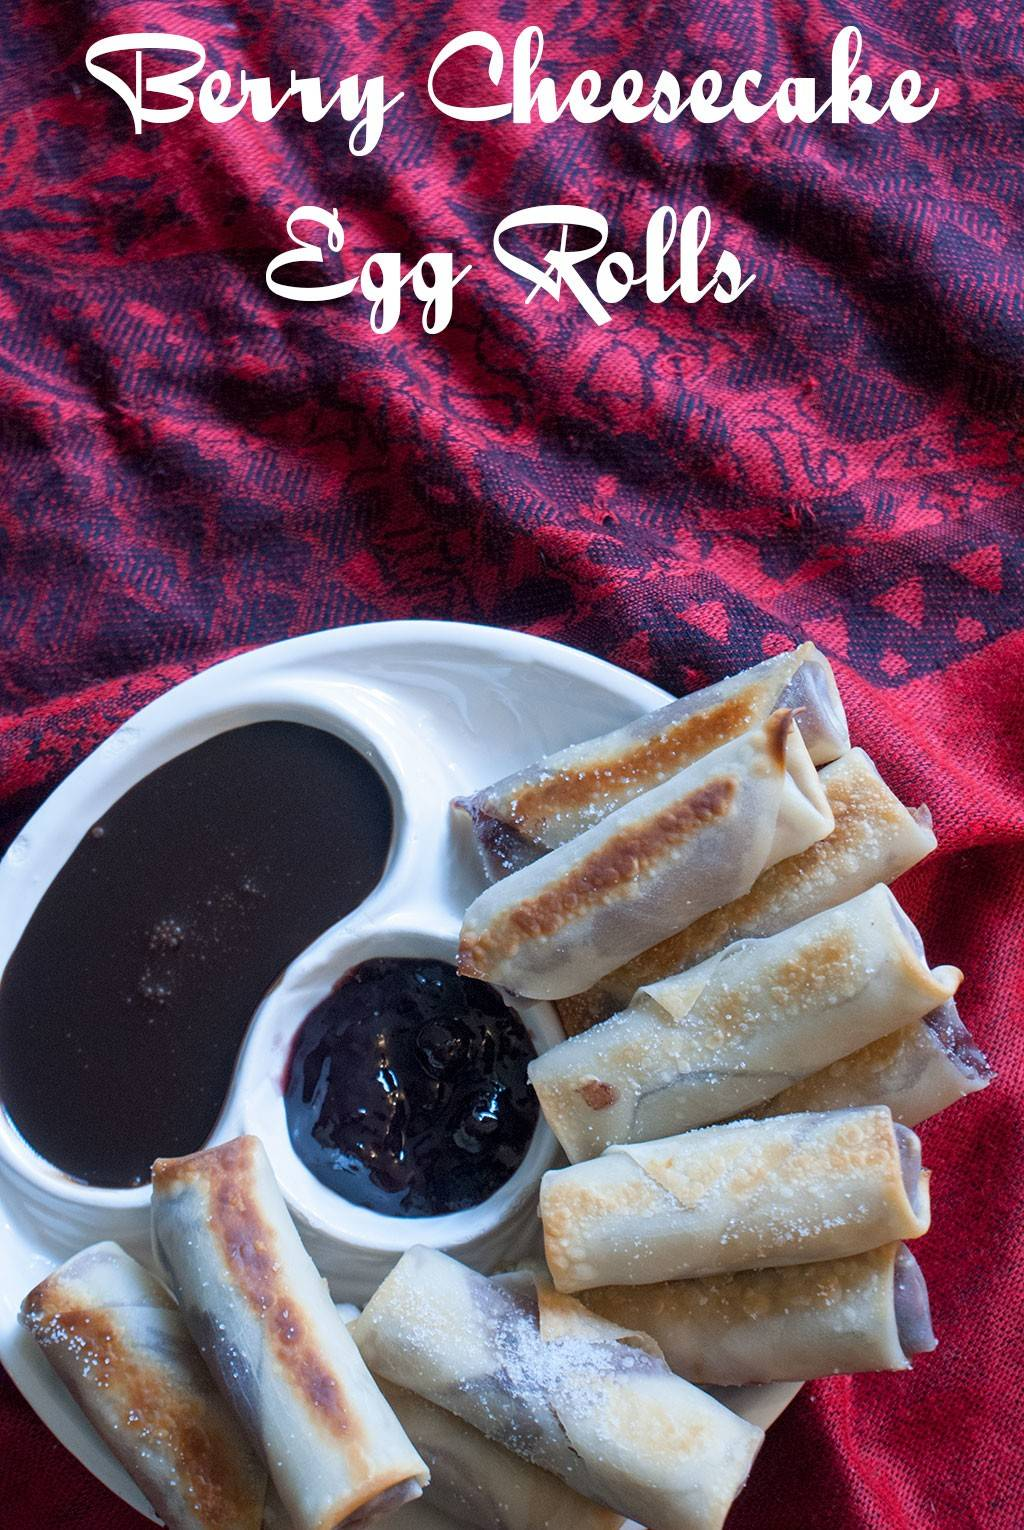 Berry Cheesecake Egg Rolls – Baked, not fried. #EasyHolidayEats